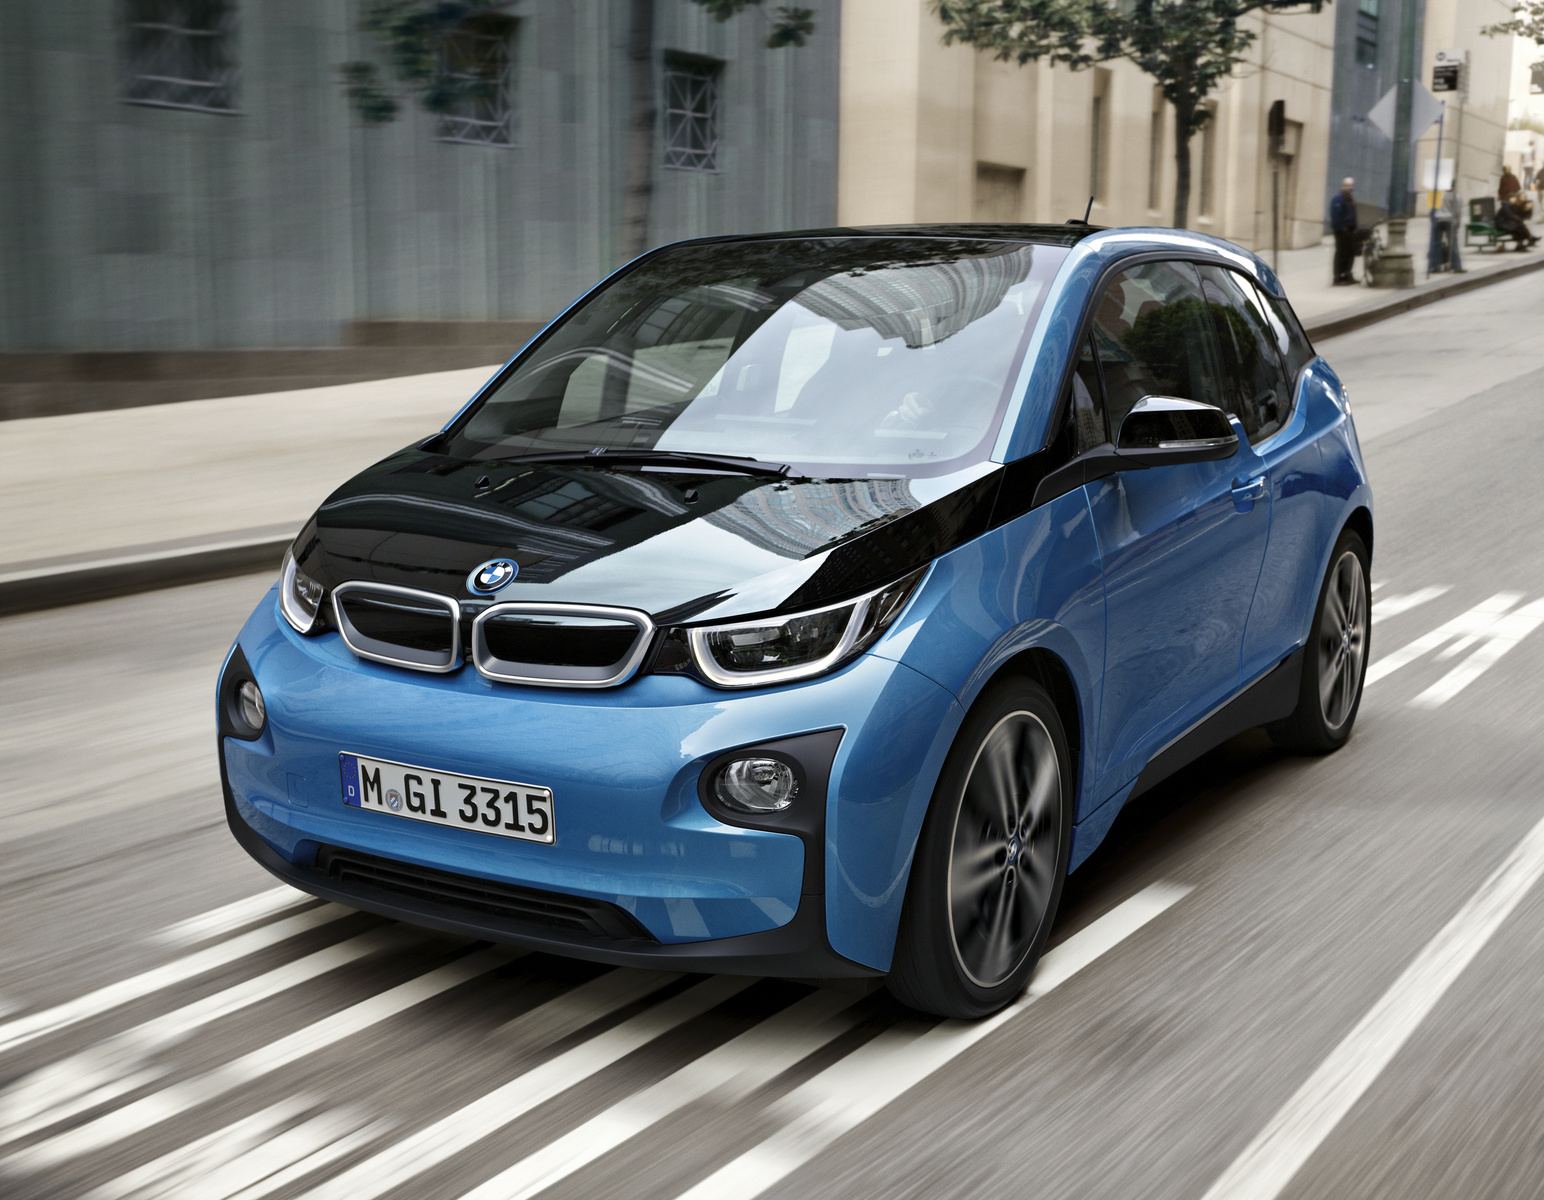 2017 BMW i3 for Sale in Los Angeles CA  CarGurus